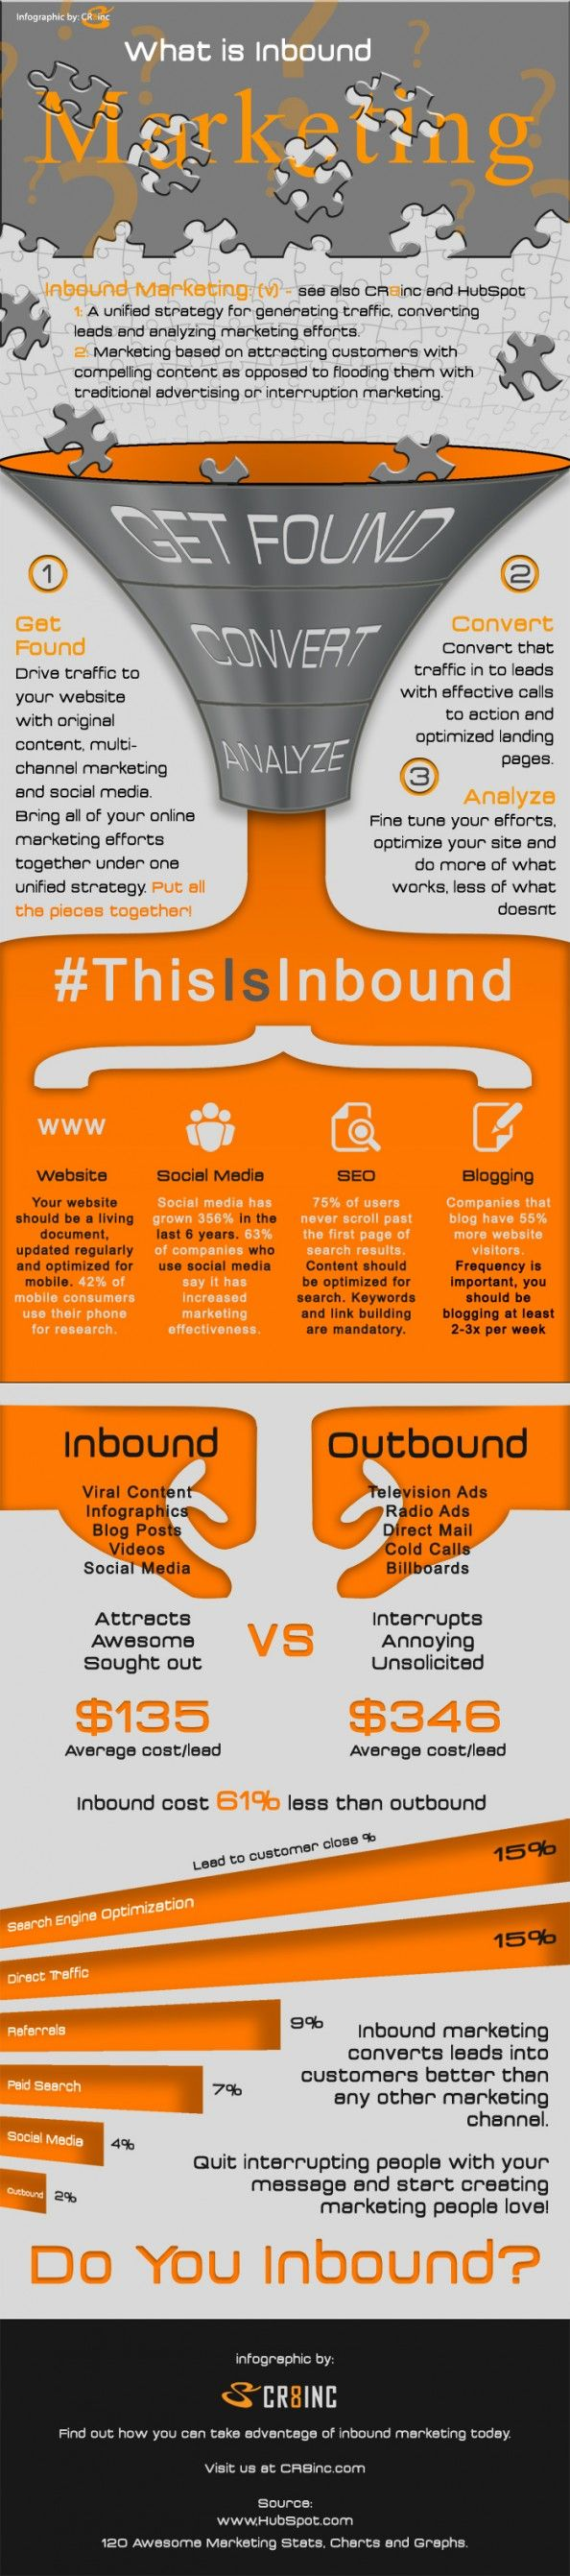 [Infographic] What Is Inbound Marketing - Classic Marketing Strategy